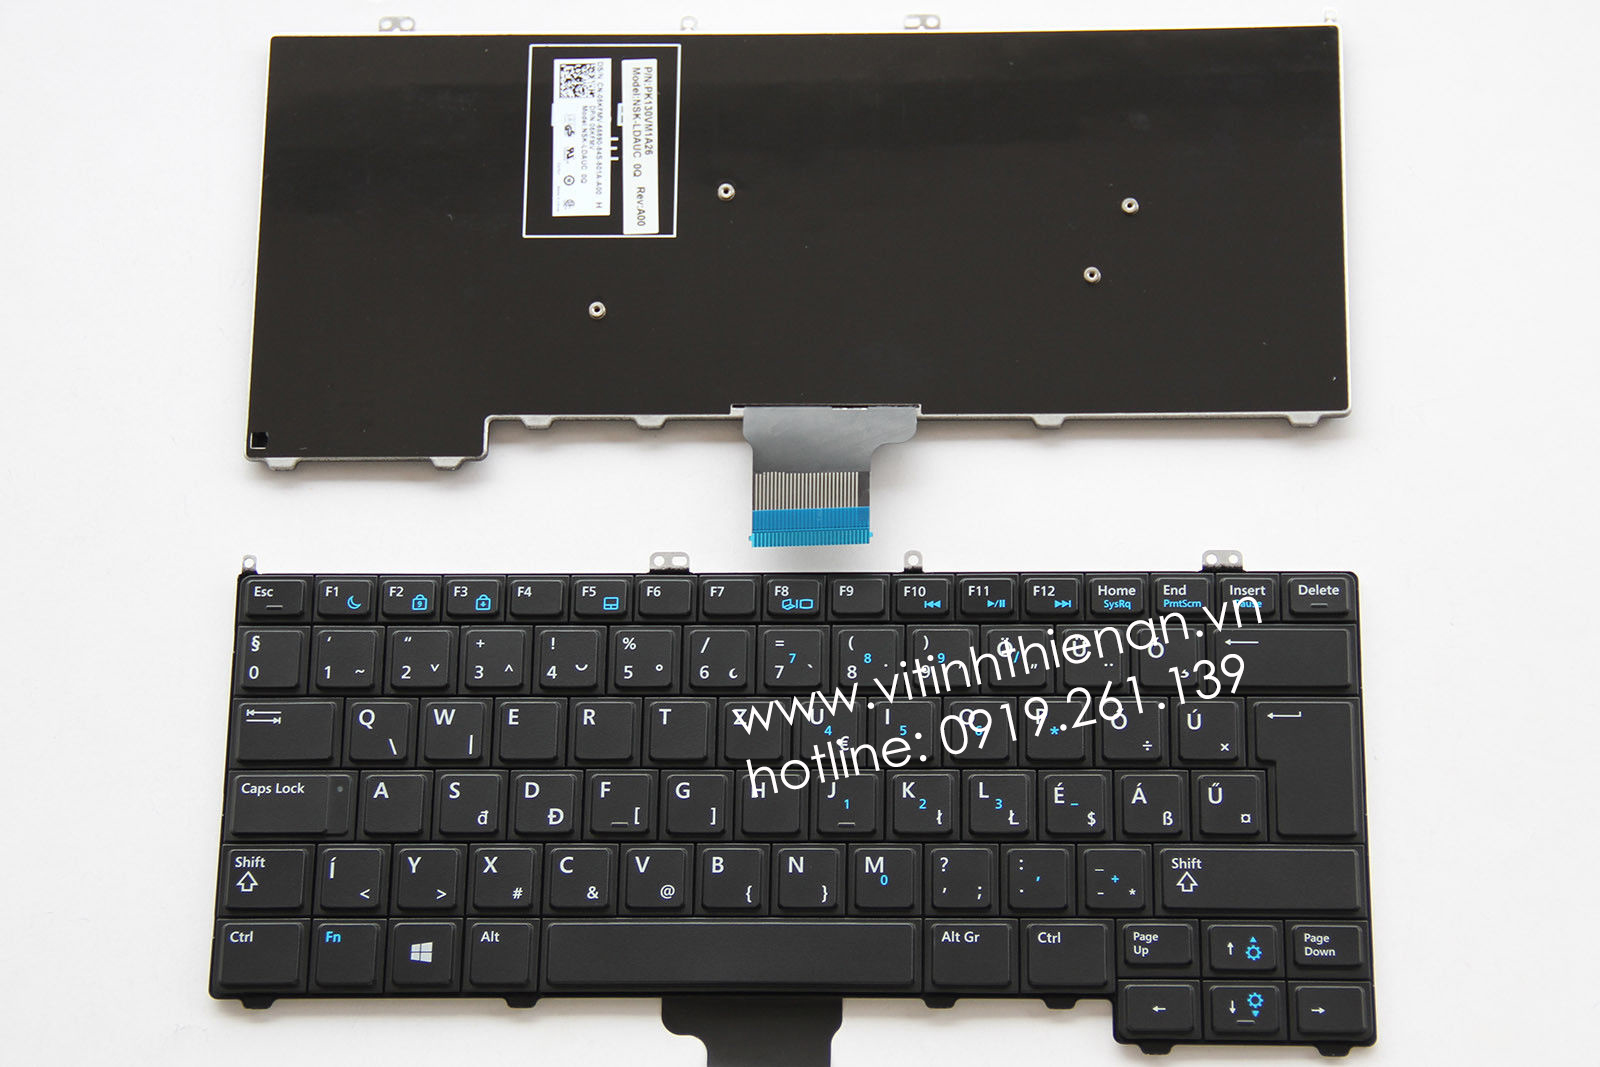 ban-phim-laptop-dell-latitude-e7440-720